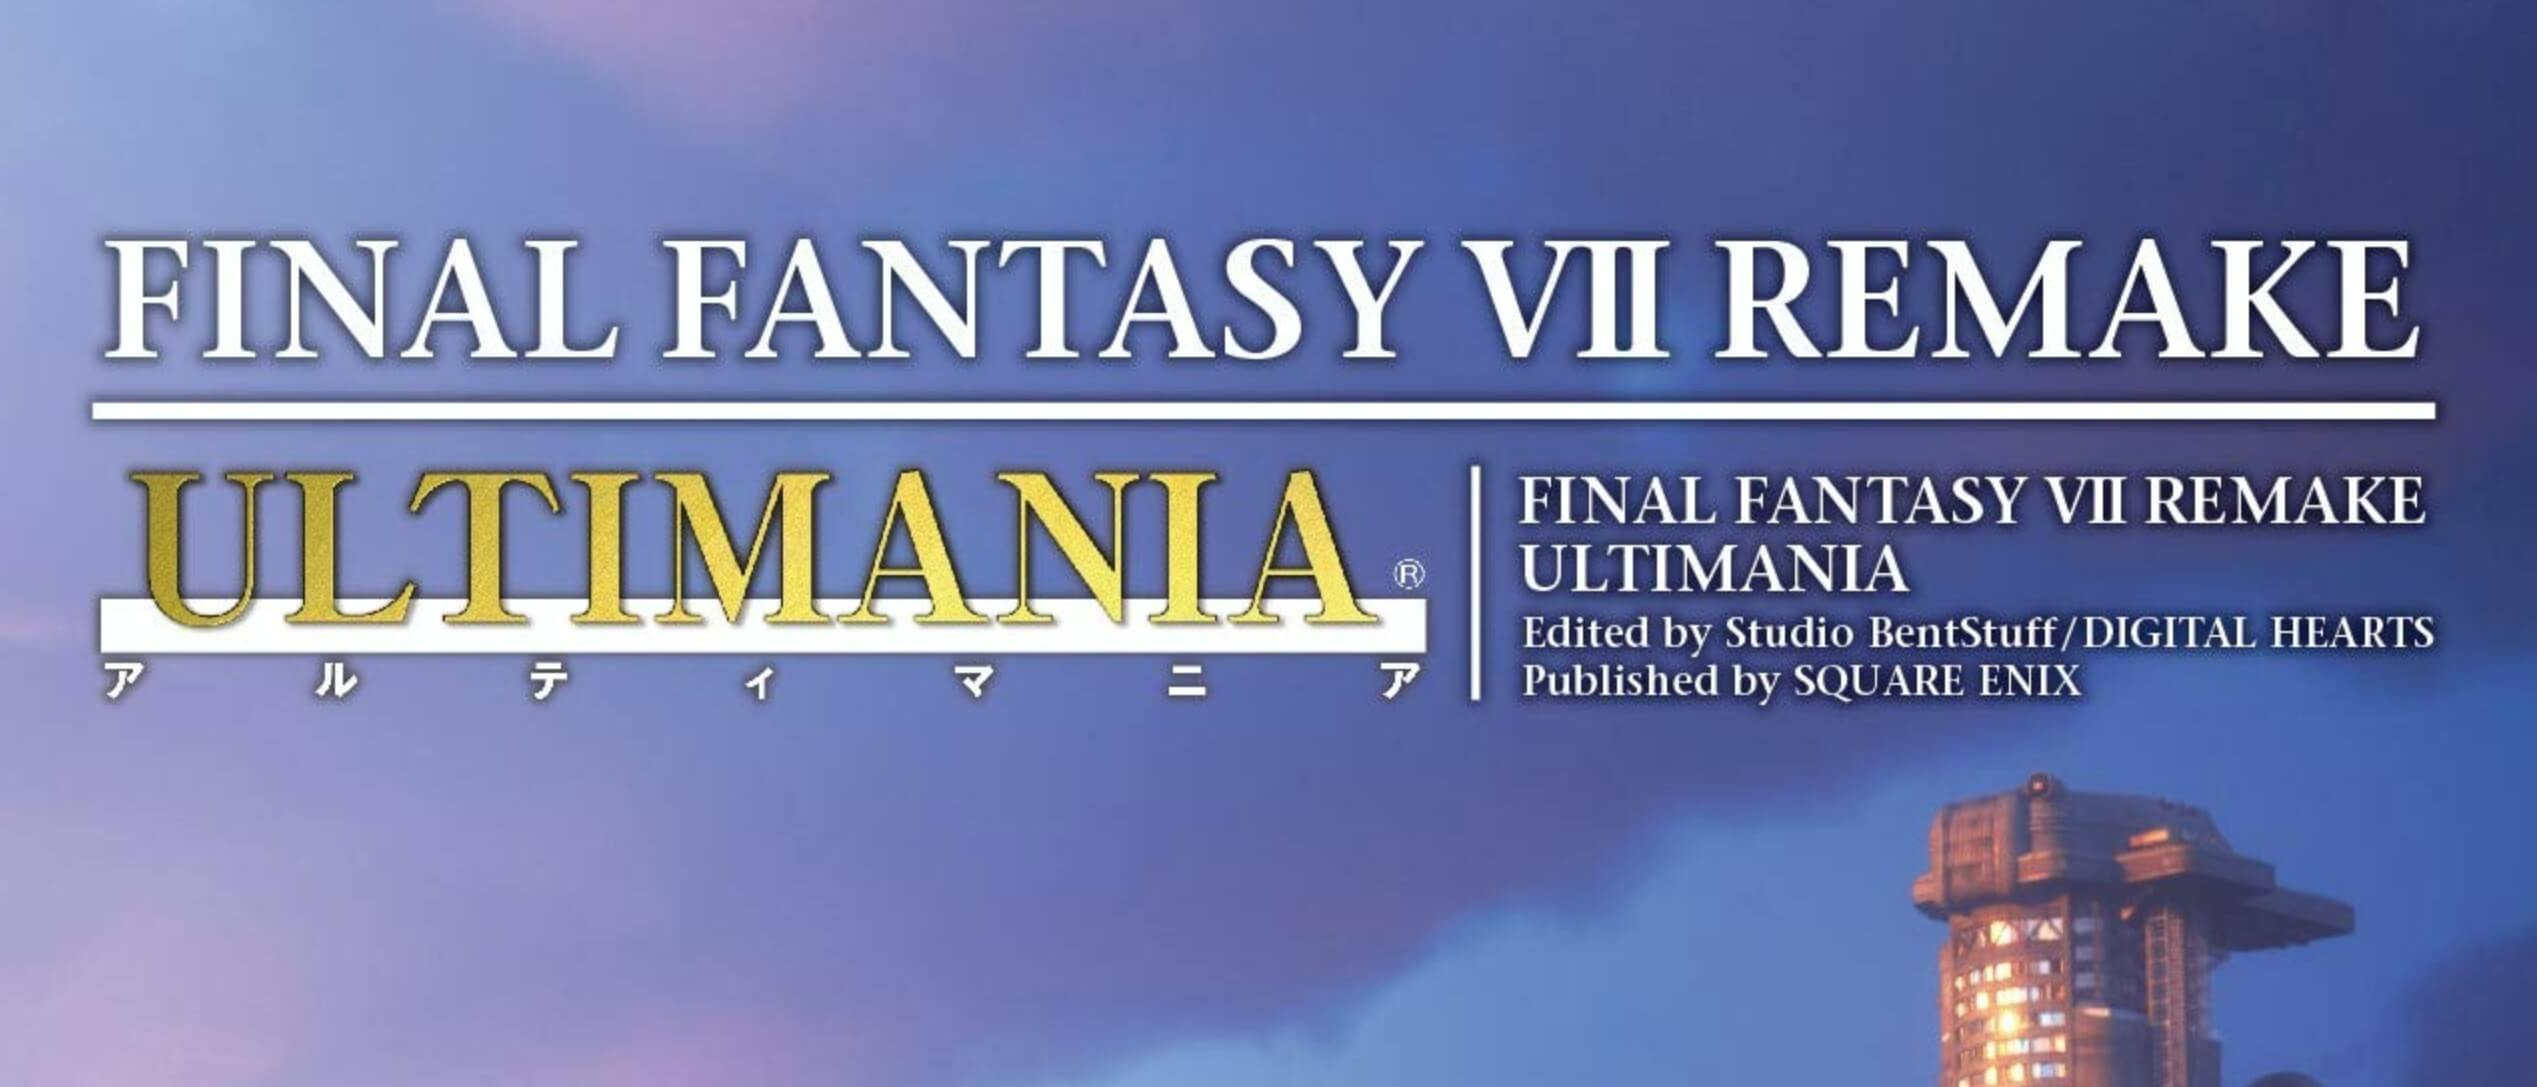 Final Fantasy Vii Remake Ultimania Guidebook Full Analysis Ff7